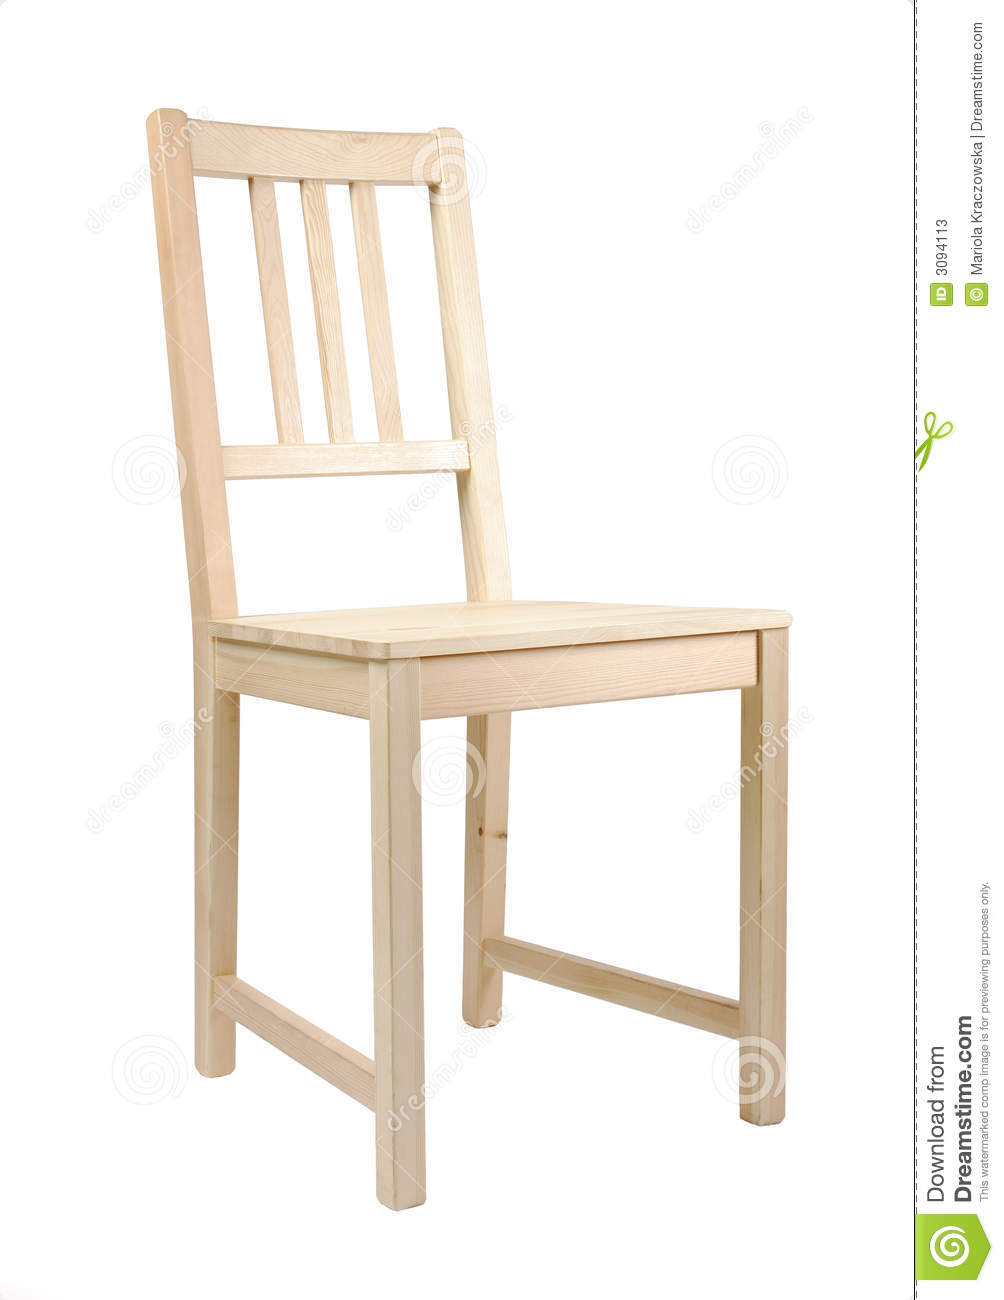 Simple Wooden Chair Stock Image Image Of Design, Decor. Small Kitchen Cabinets For Sale. Kitchen Ideas In Pakistan. Small Backyard Pond Design. Japanese Landscape Ideas. Party Ideas Blogs. Unique Gender Reveal Ideas 2013. Dinner Ideas Desi. Craft Ideas For 2 Year Olds